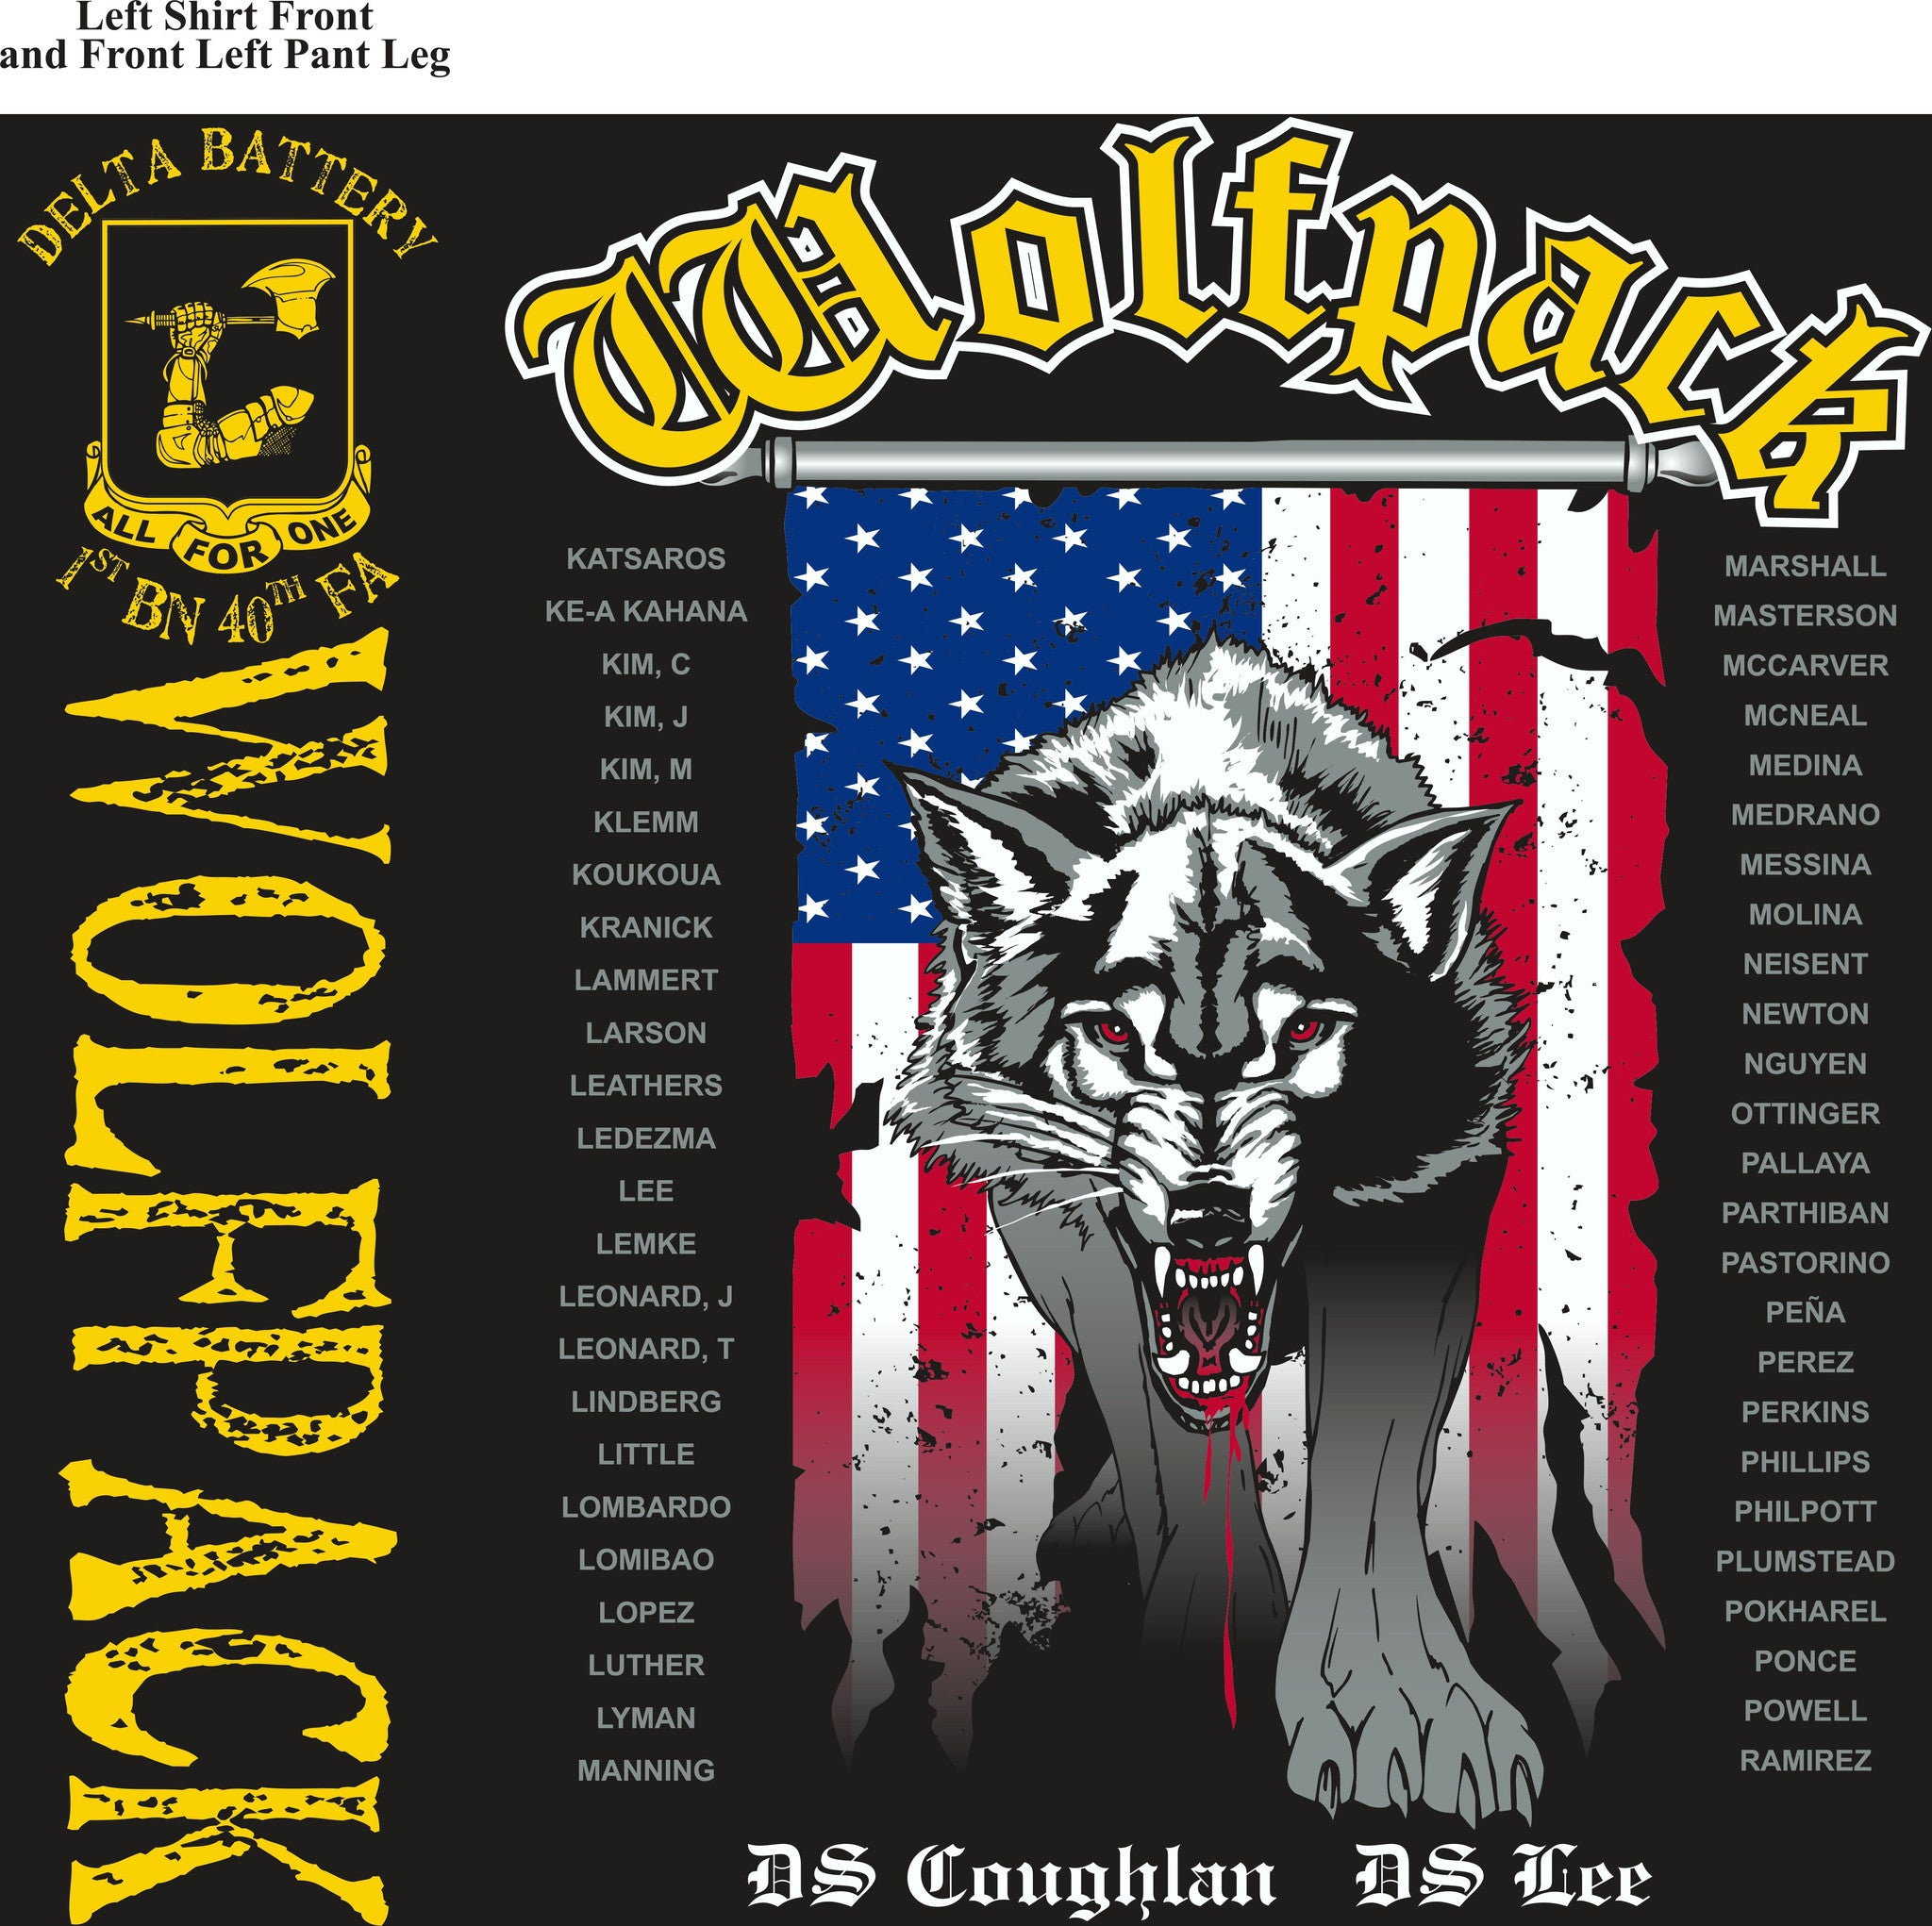 PLATOON SHIRTS (2nd generation print) DELTA 1st 40th WOLFPACK JUNE 2016